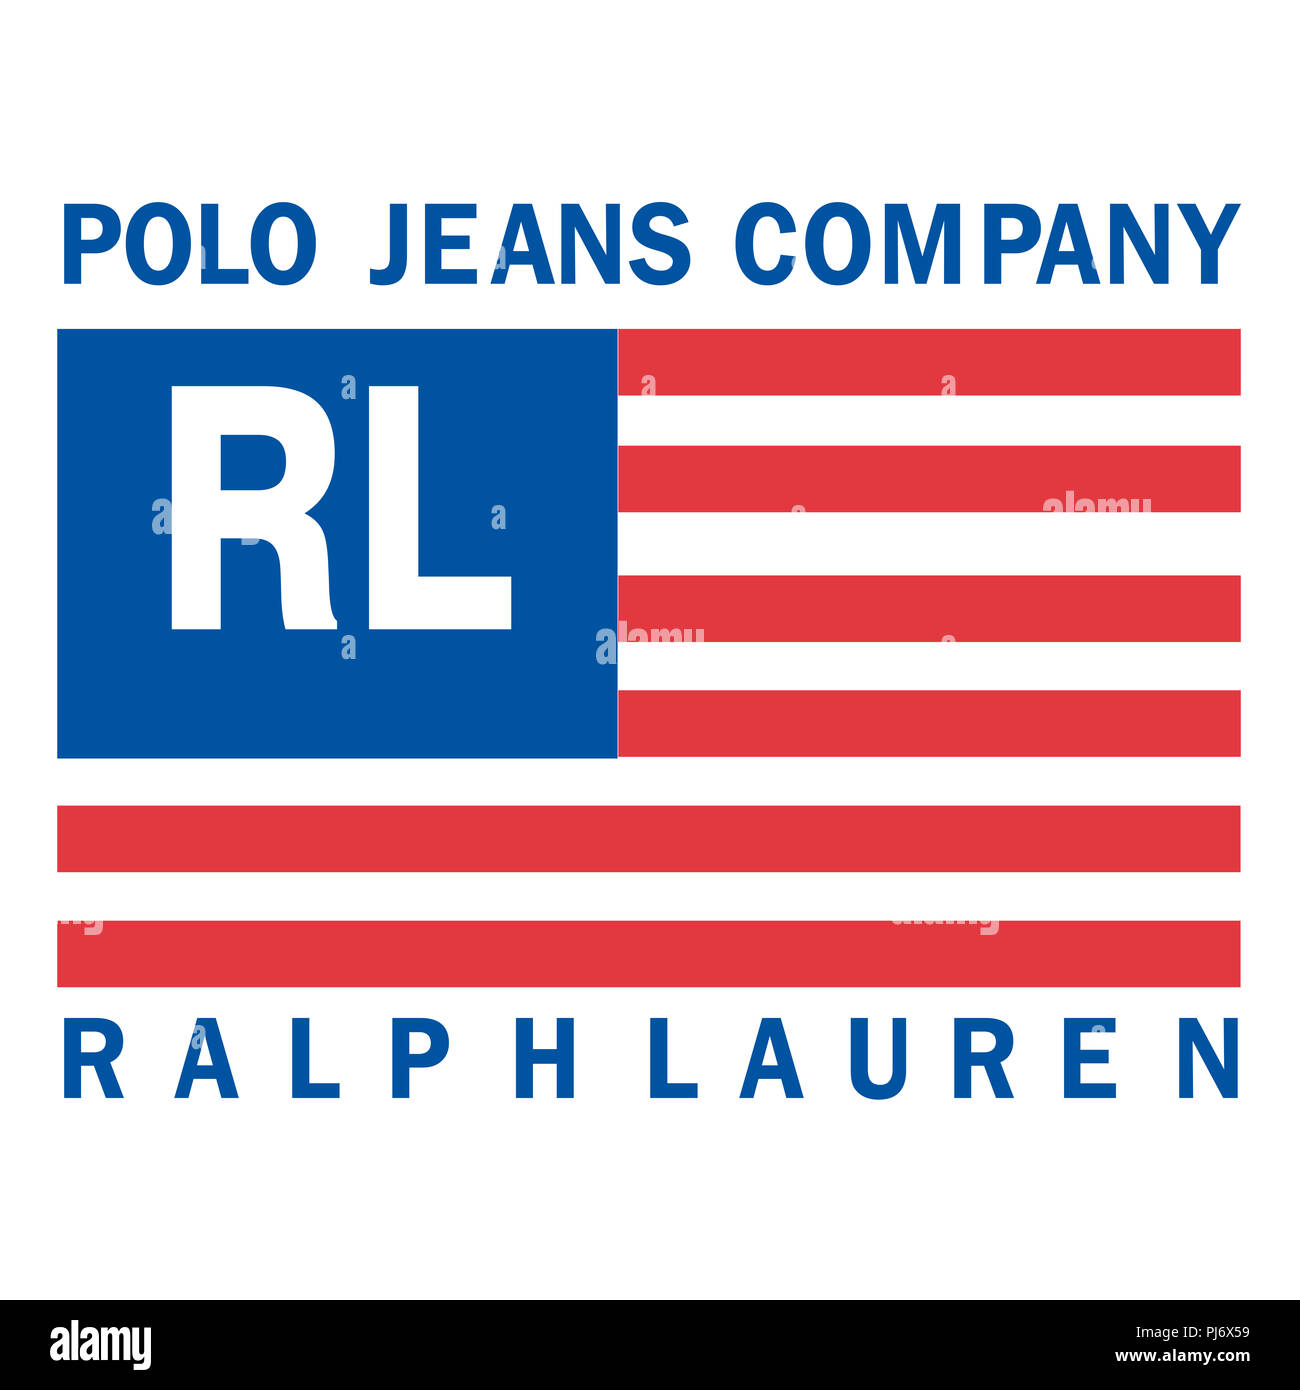 Polo ralph lauren usa flag logo marque de luxe fashion illustration  vêtements aebbcfac4ad4